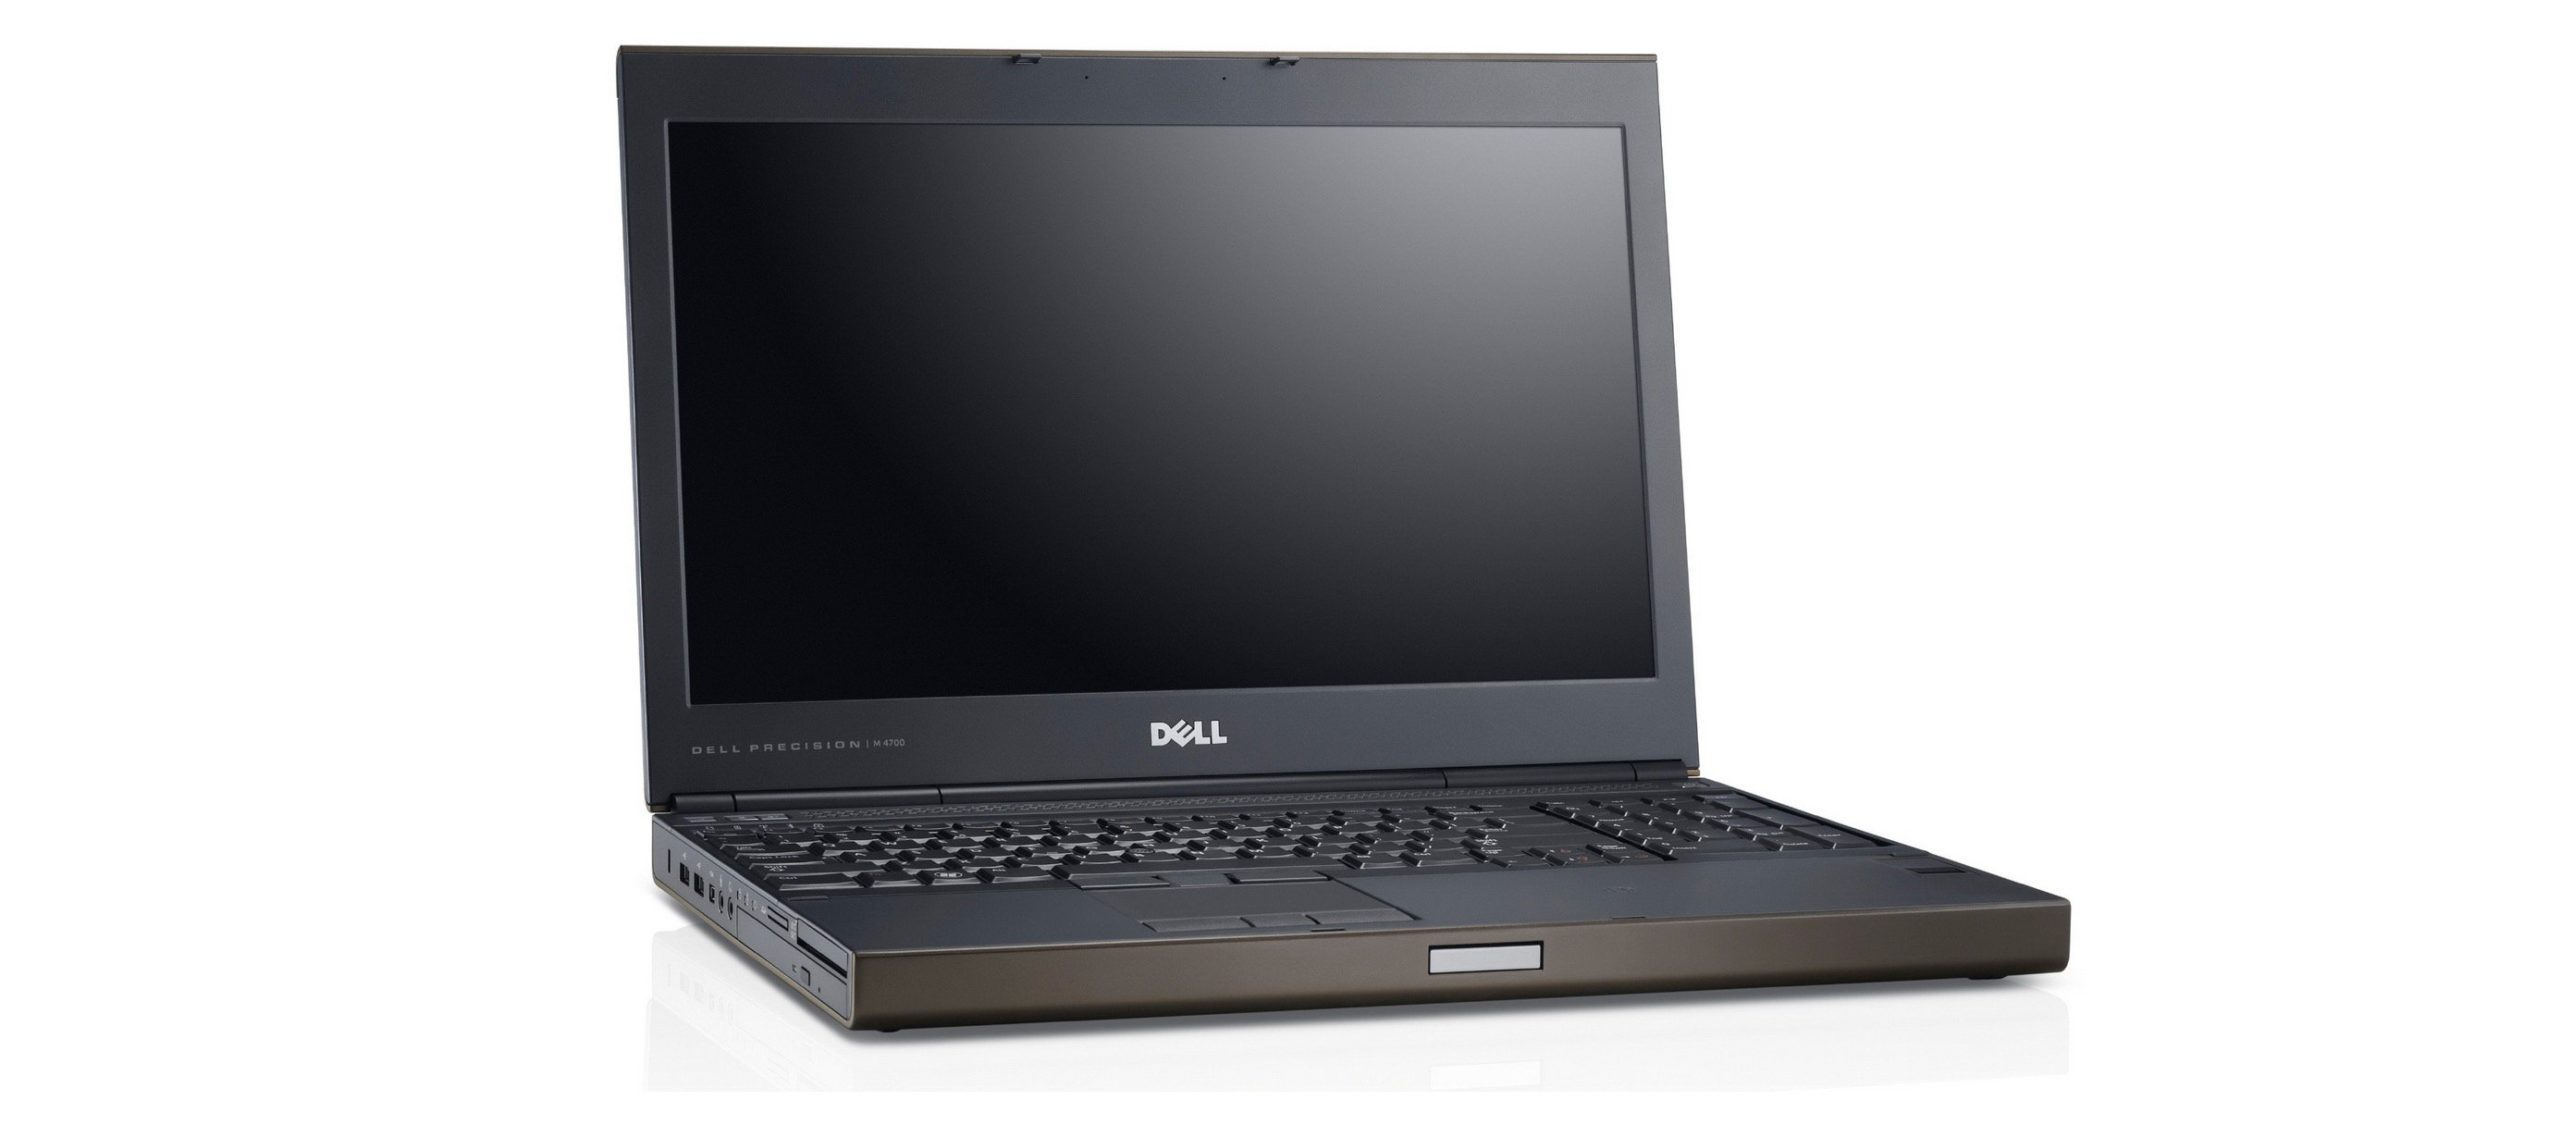 personal computer history rent lease acquisition hardware min computers laptop desktop known dell novastar vs